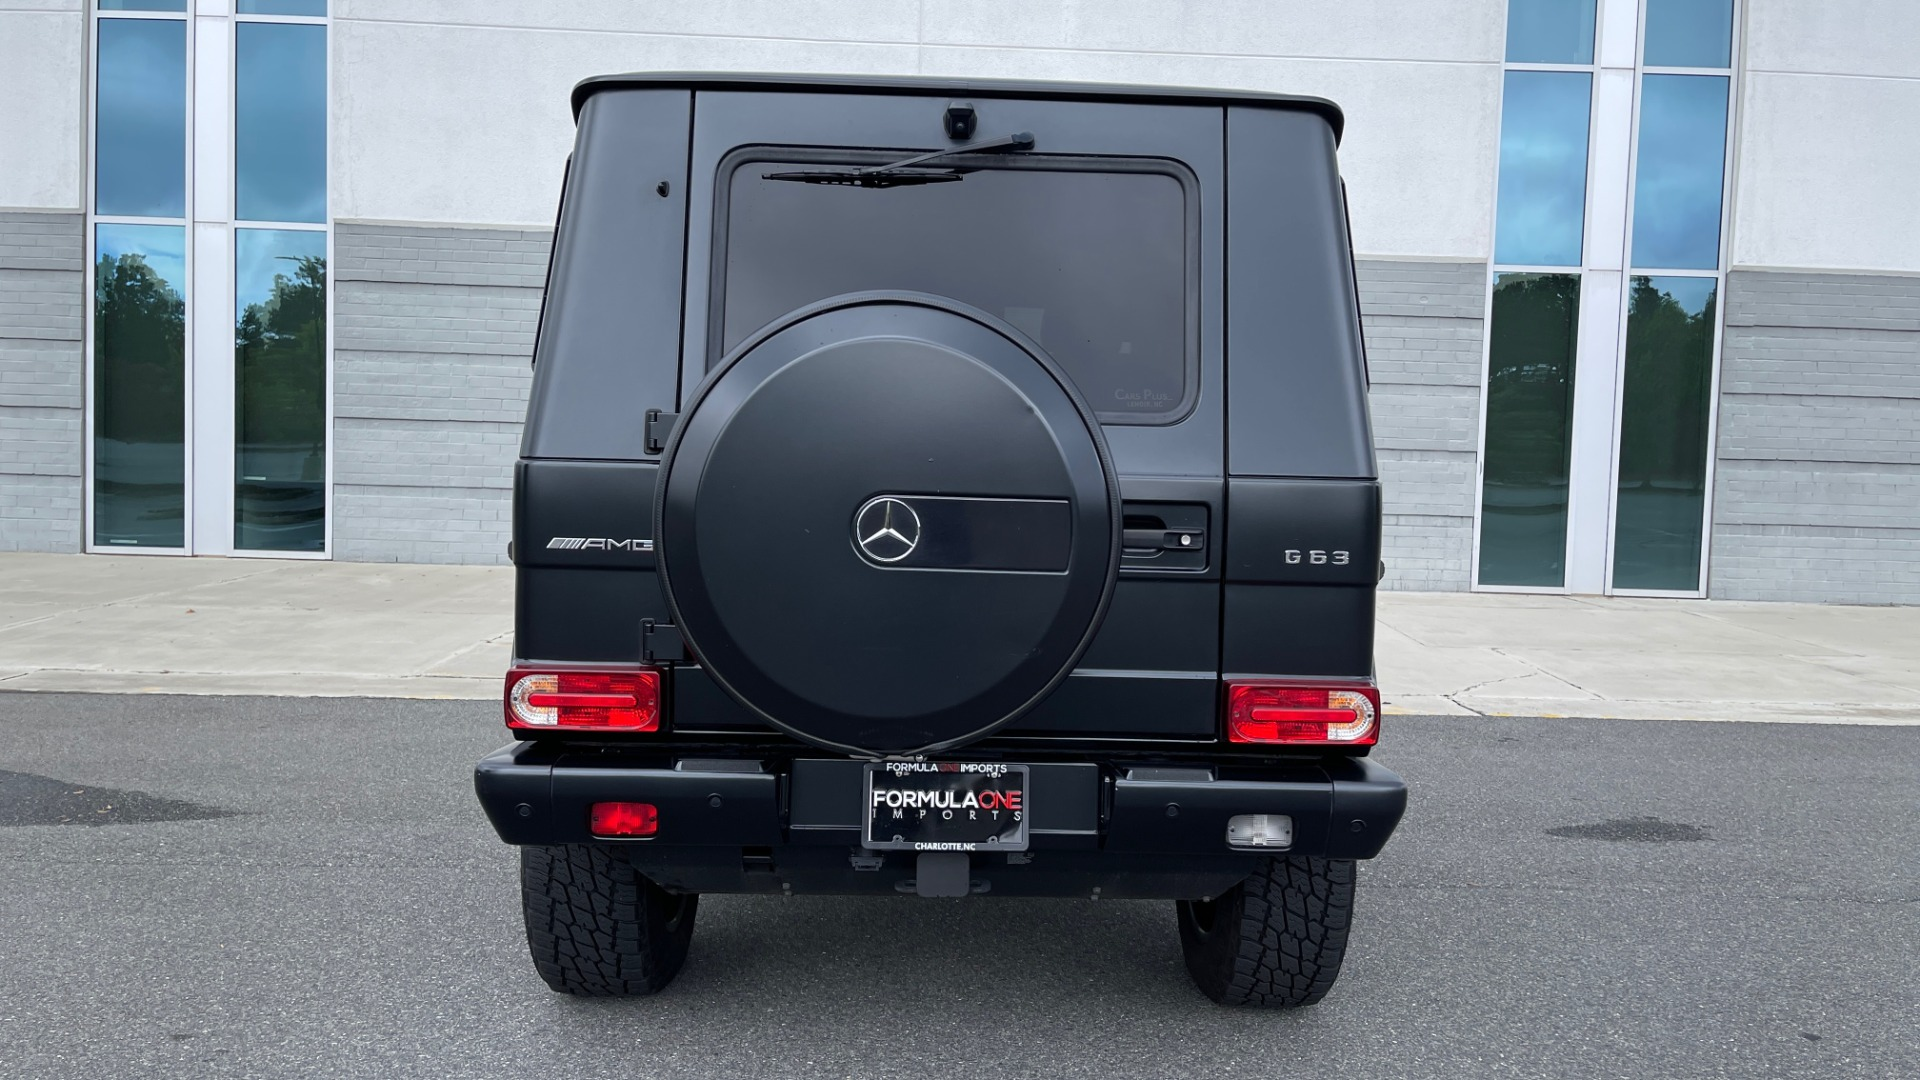 Used 2017 Mercedes-Benz G-CLASS AMG G 63 / DESIGNO PKG / NAV / SUNROOF / H/K SND / REARVIEW for sale $124,999 at Formula Imports in Charlotte NC 28227 16